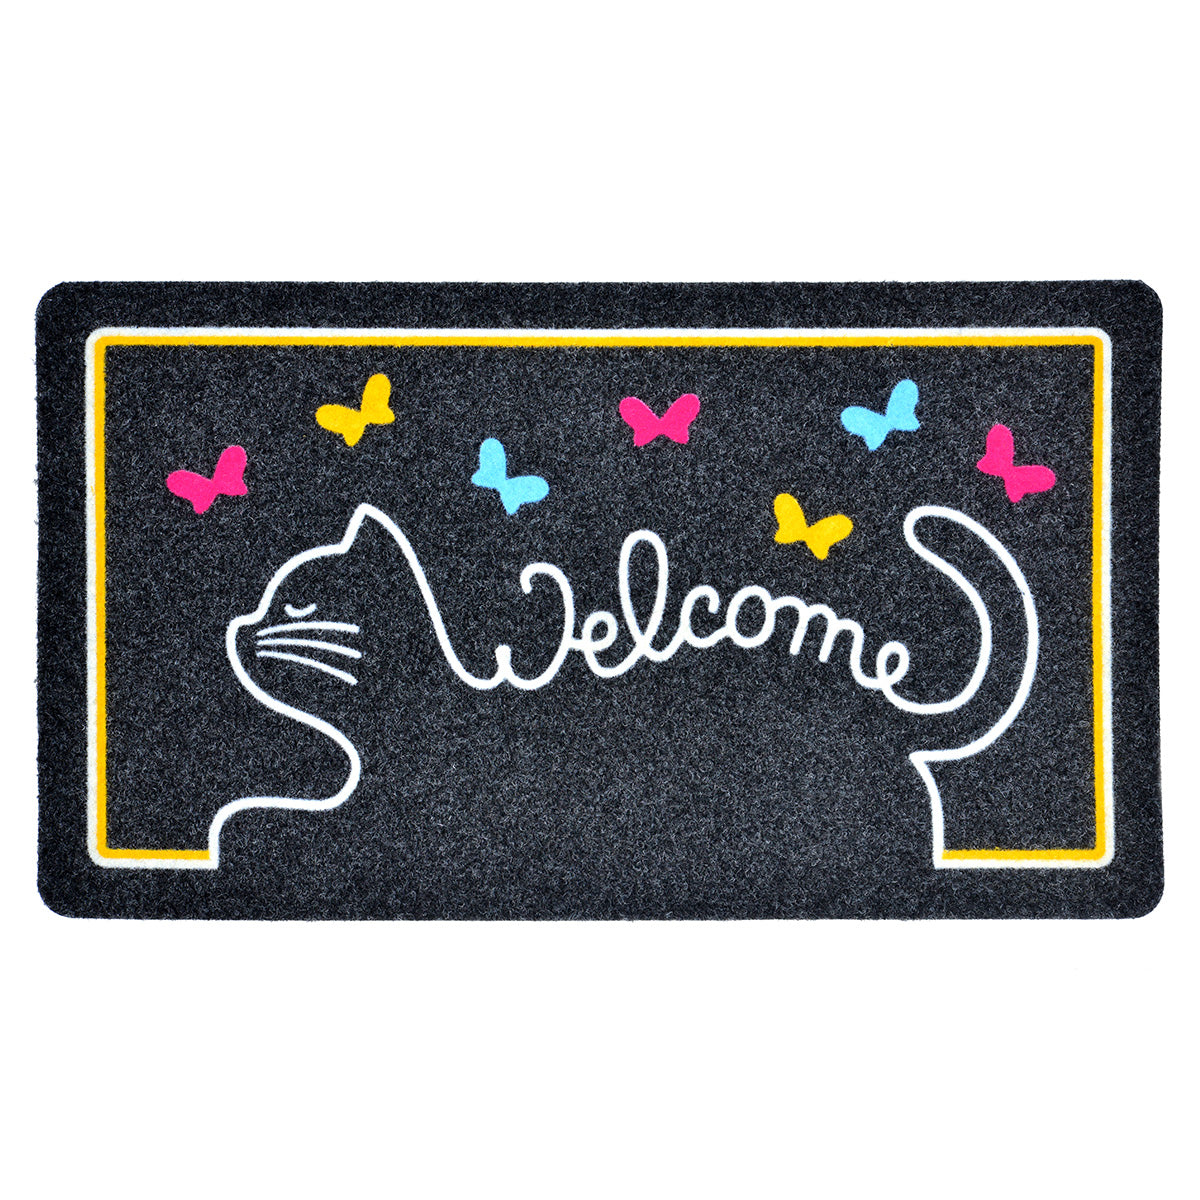 Covoras intrare 40x70cm CAT WELCOME TRENDY